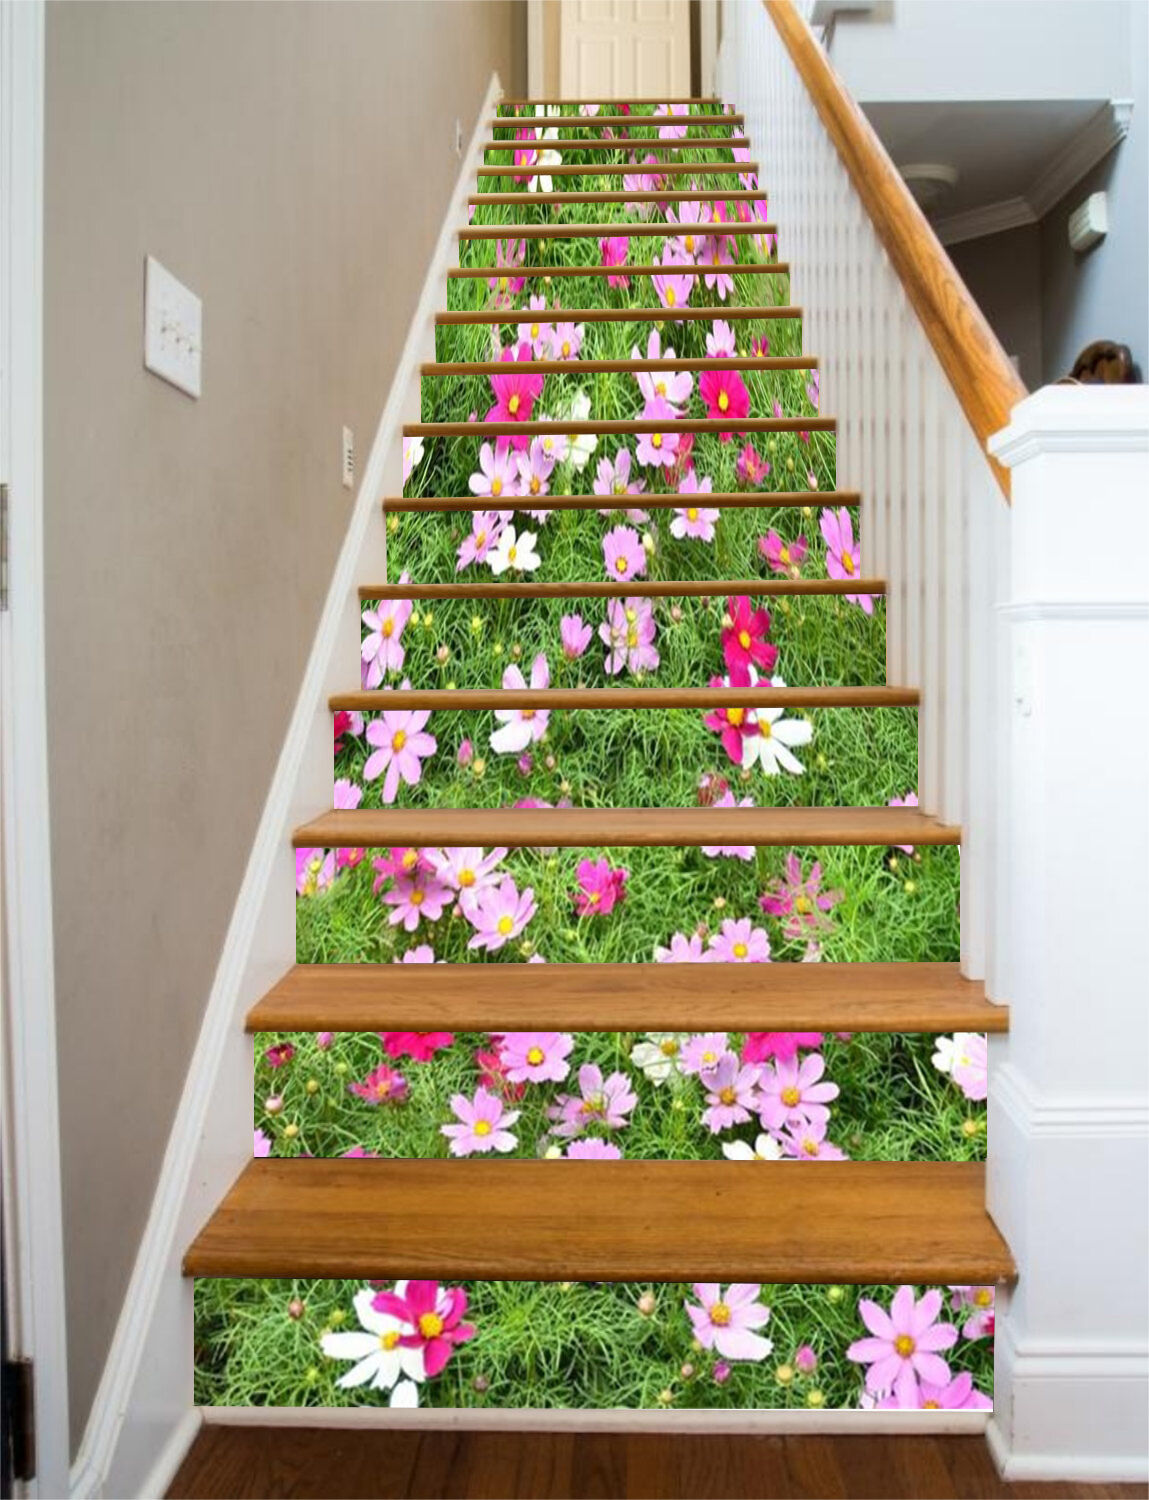 3D Flowers Meadow 2 Stair Risers Decoration Photo Mural Vinyl Decal Wallpaper UK